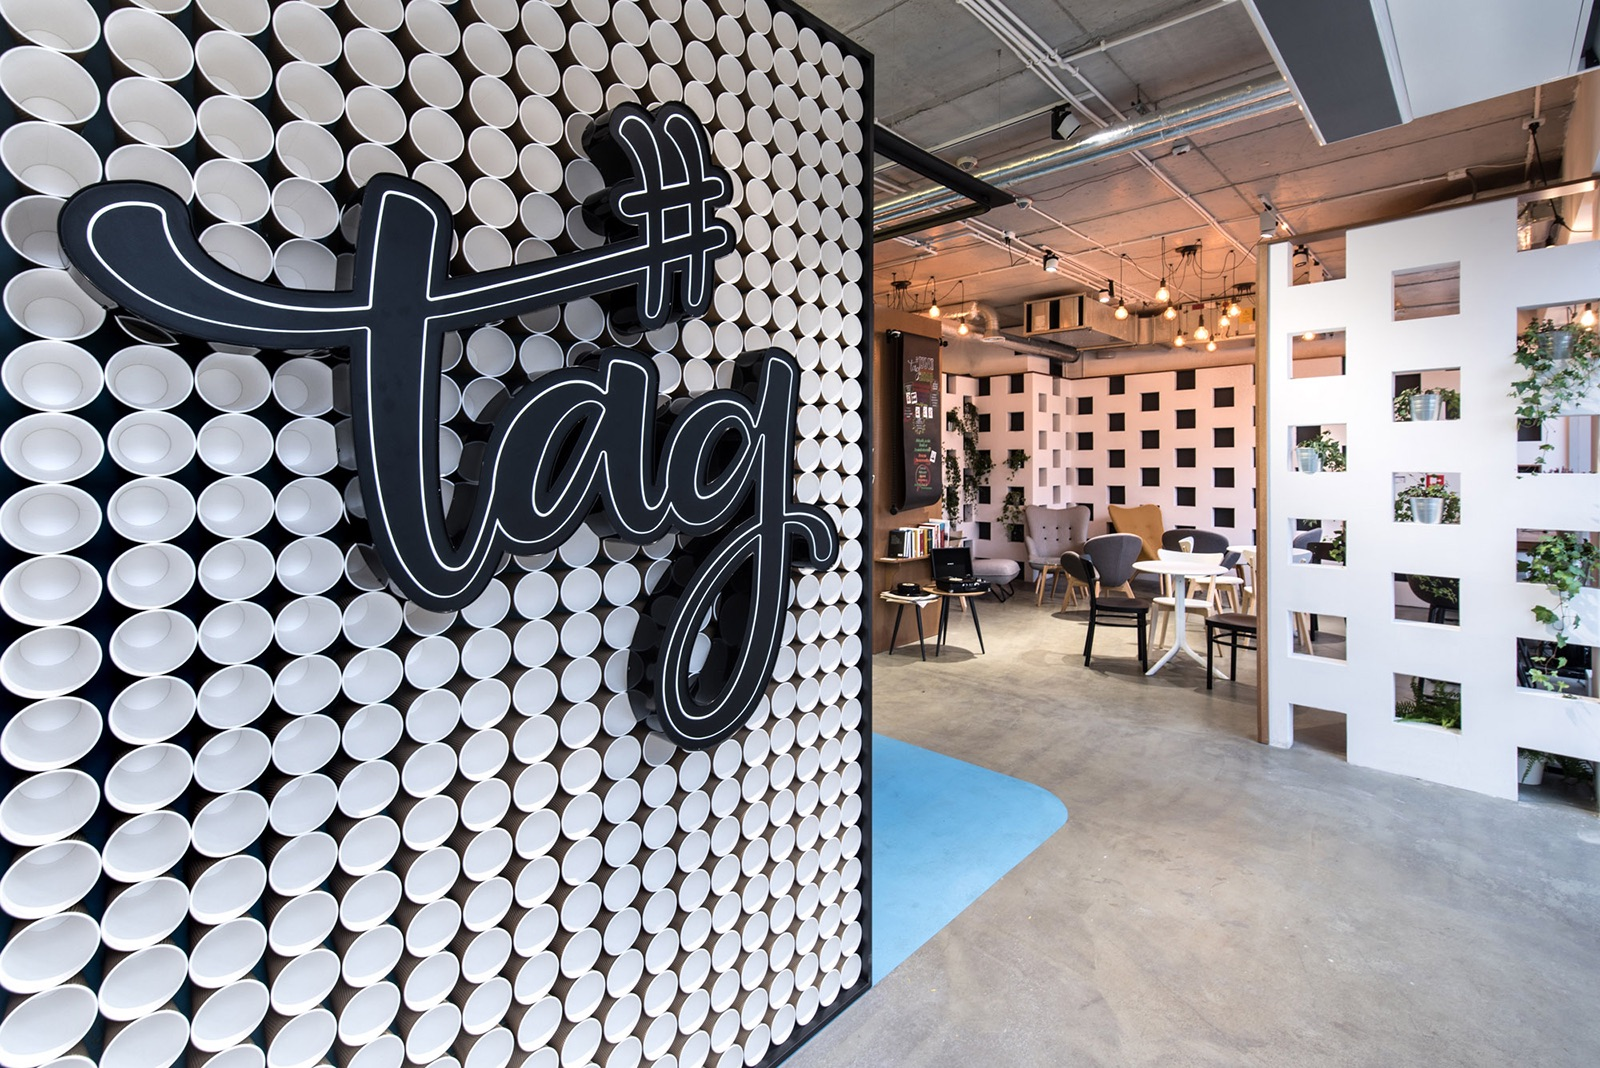 tag-coffee-warsaw-16